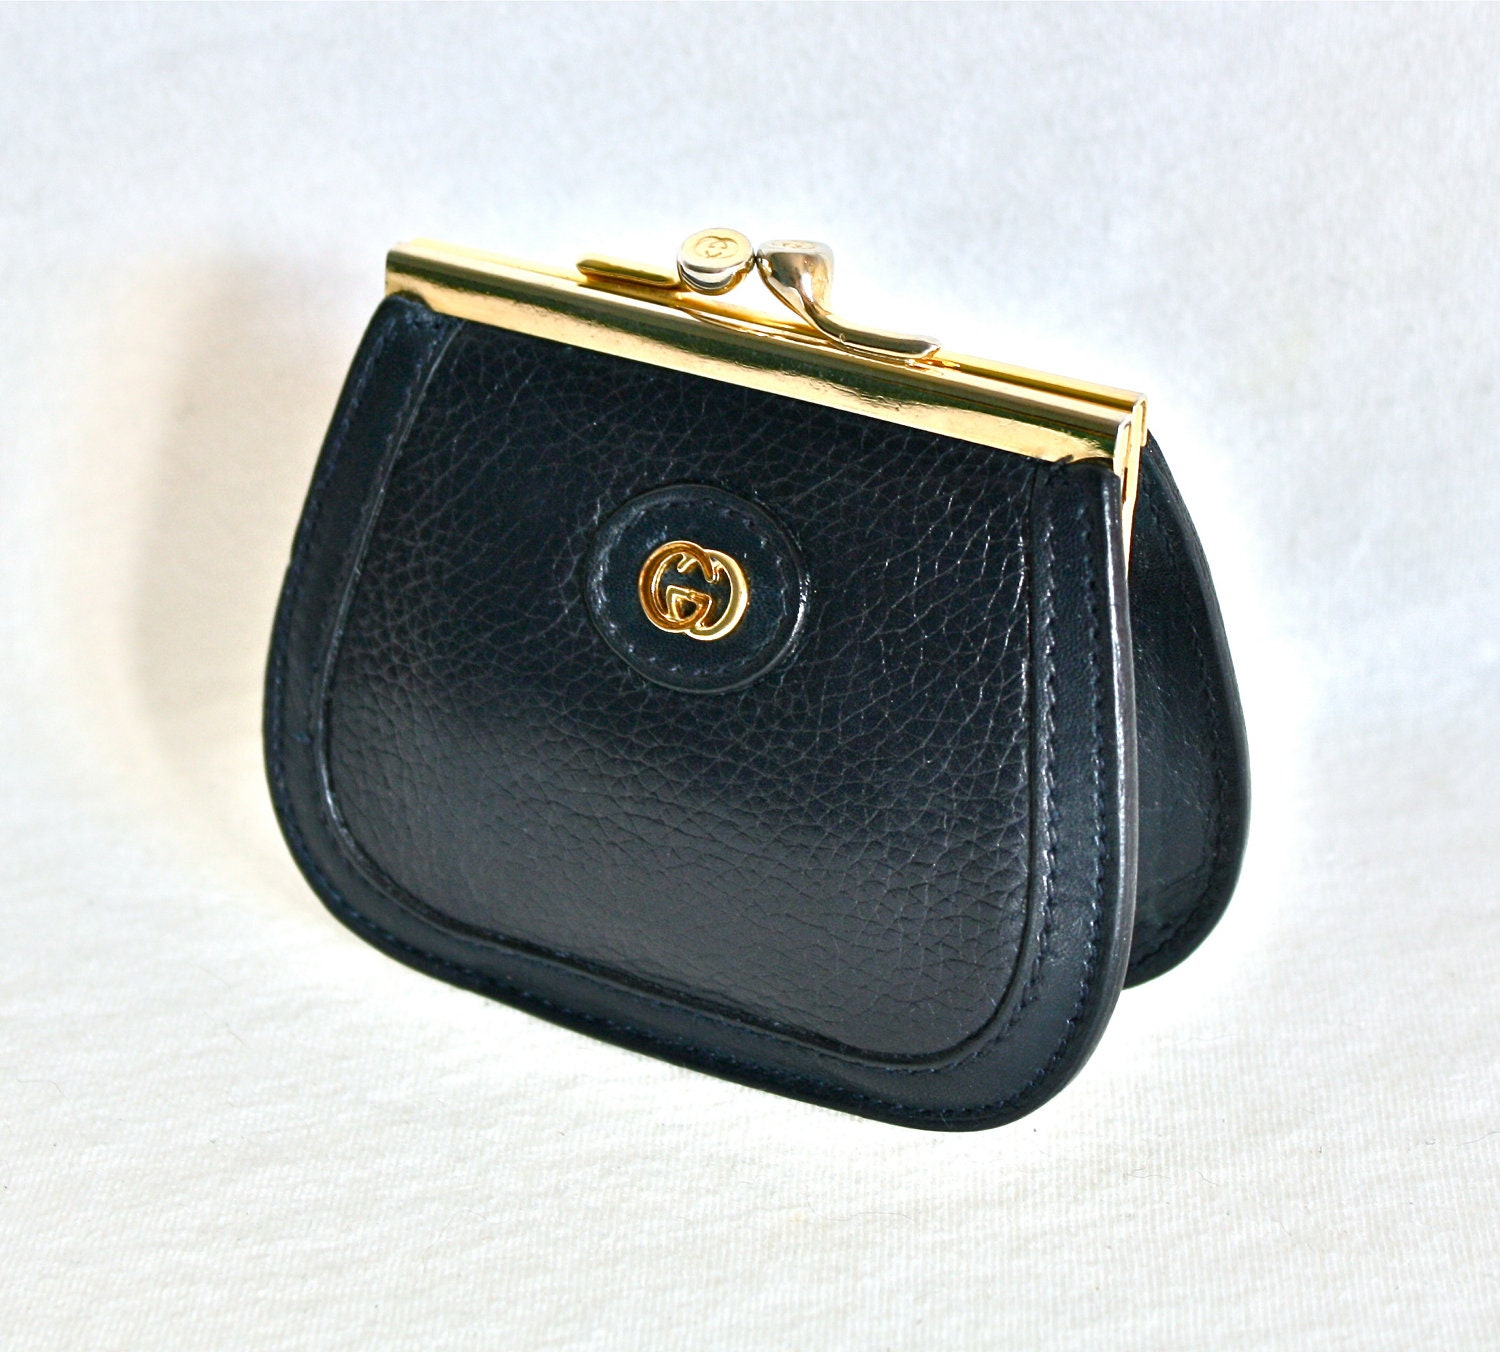 Vintage Gucci Coin Purse Navy Leather Kisslock Wallet